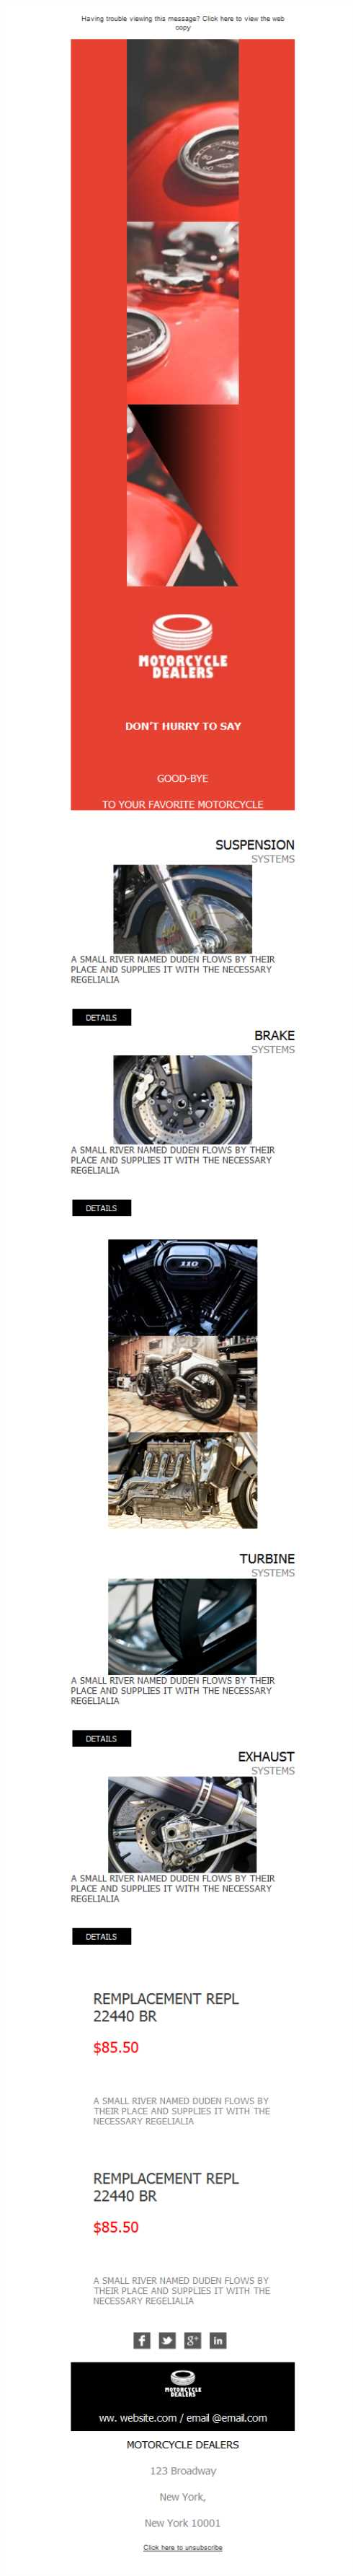 Templates Emailing Motorcycle Luxury Sarbacane